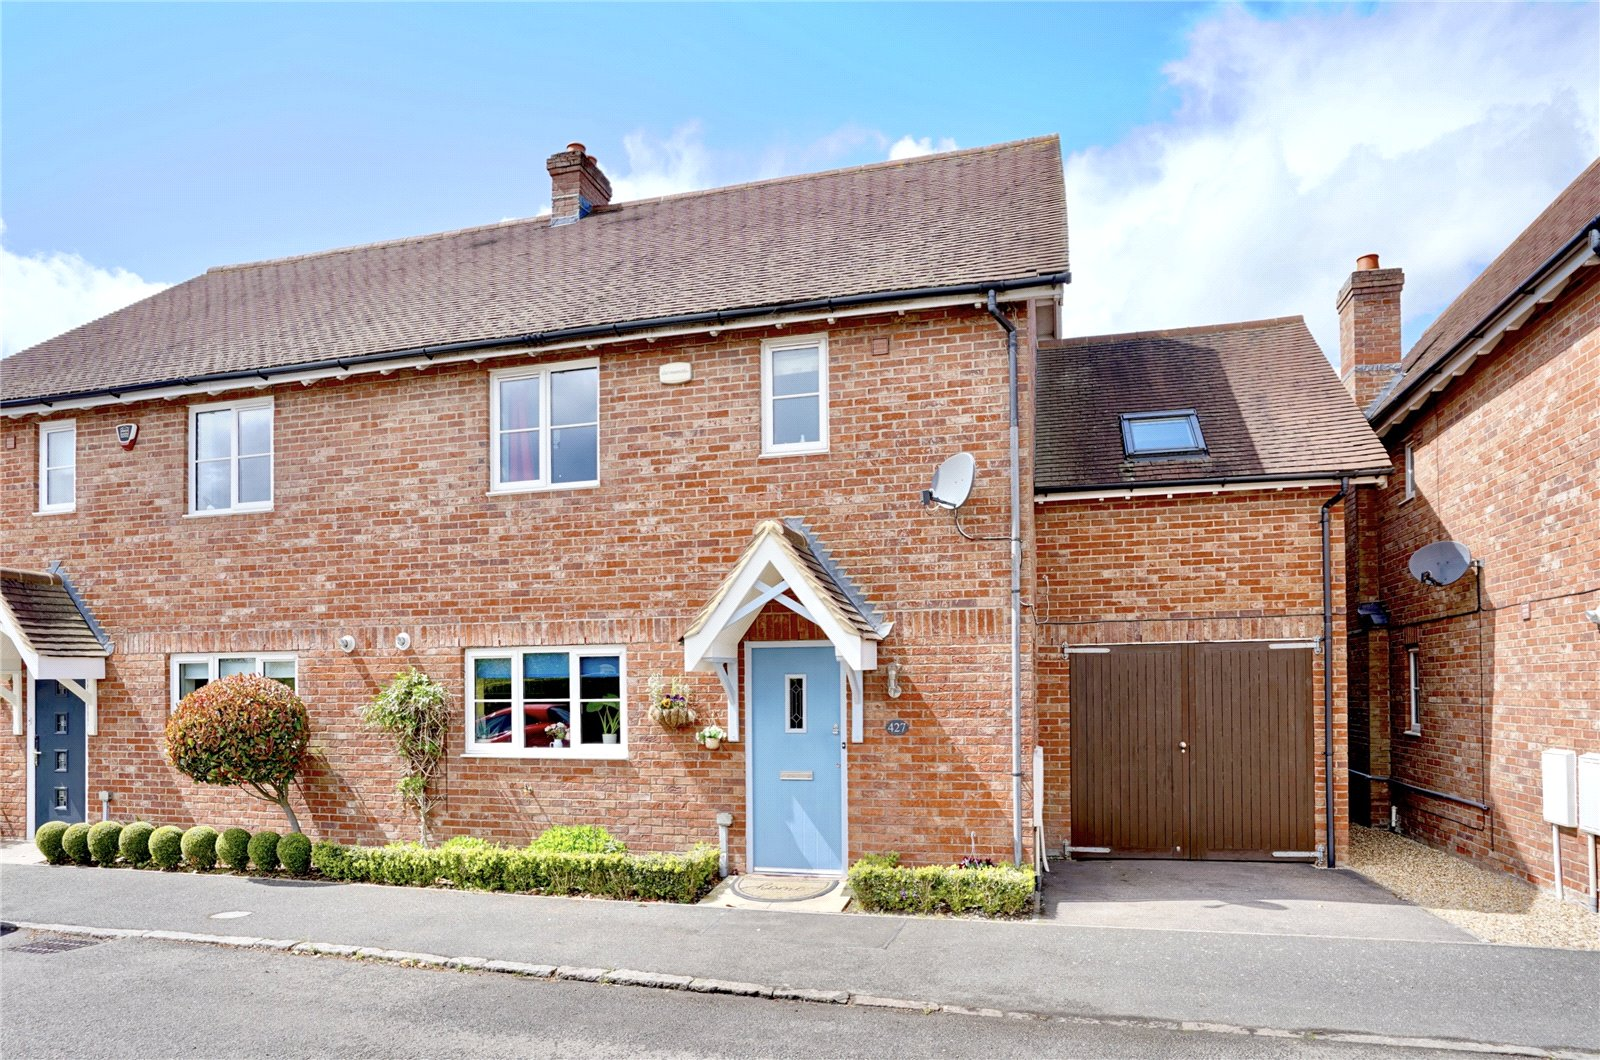 4 bed house for sale in Great North Road, Eaton Ford, PE19